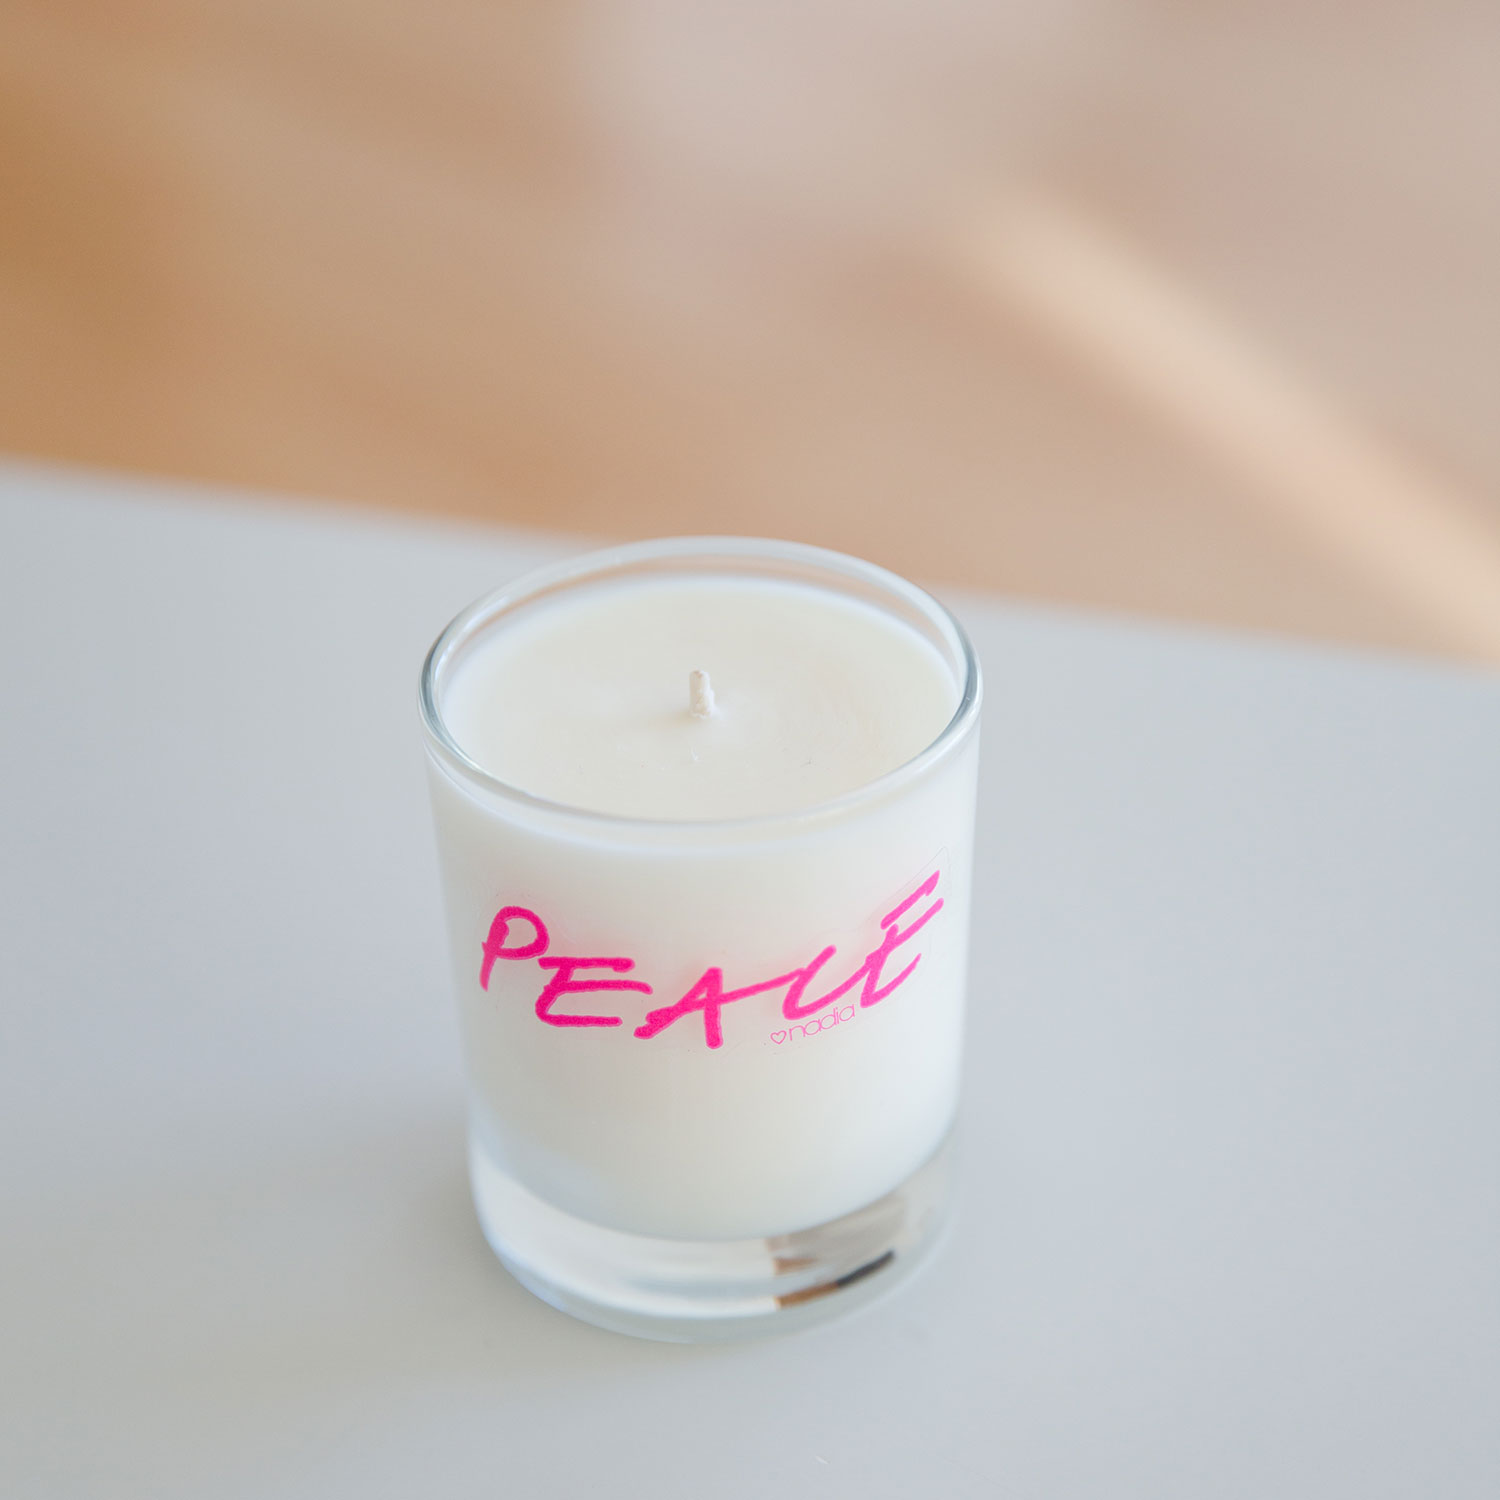 peace-candle.jpg